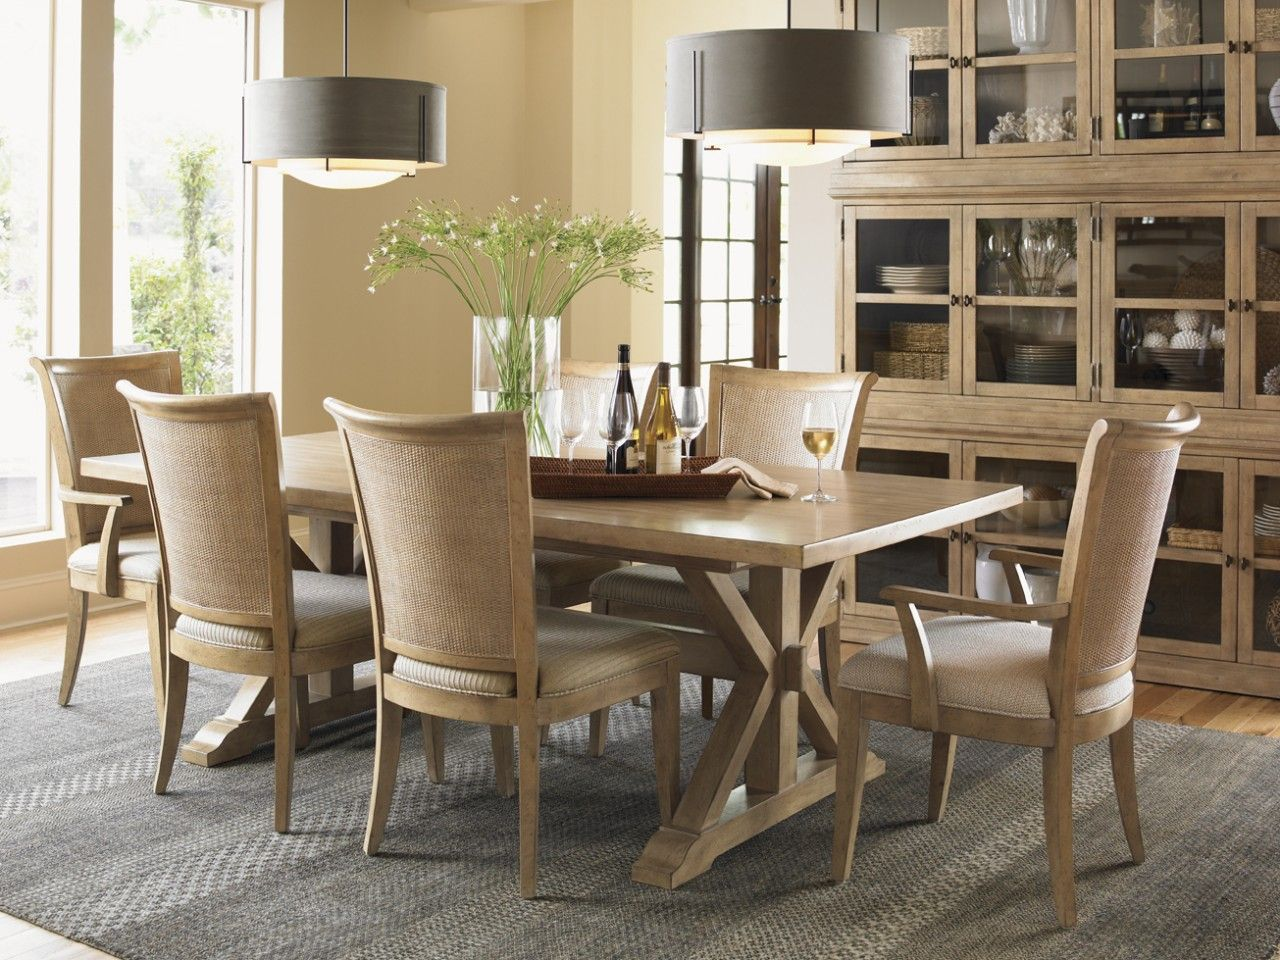 Lexington Monterey Sands 7 Pc Walnut Creek Dining Table And Los Altos Chairs  Set In